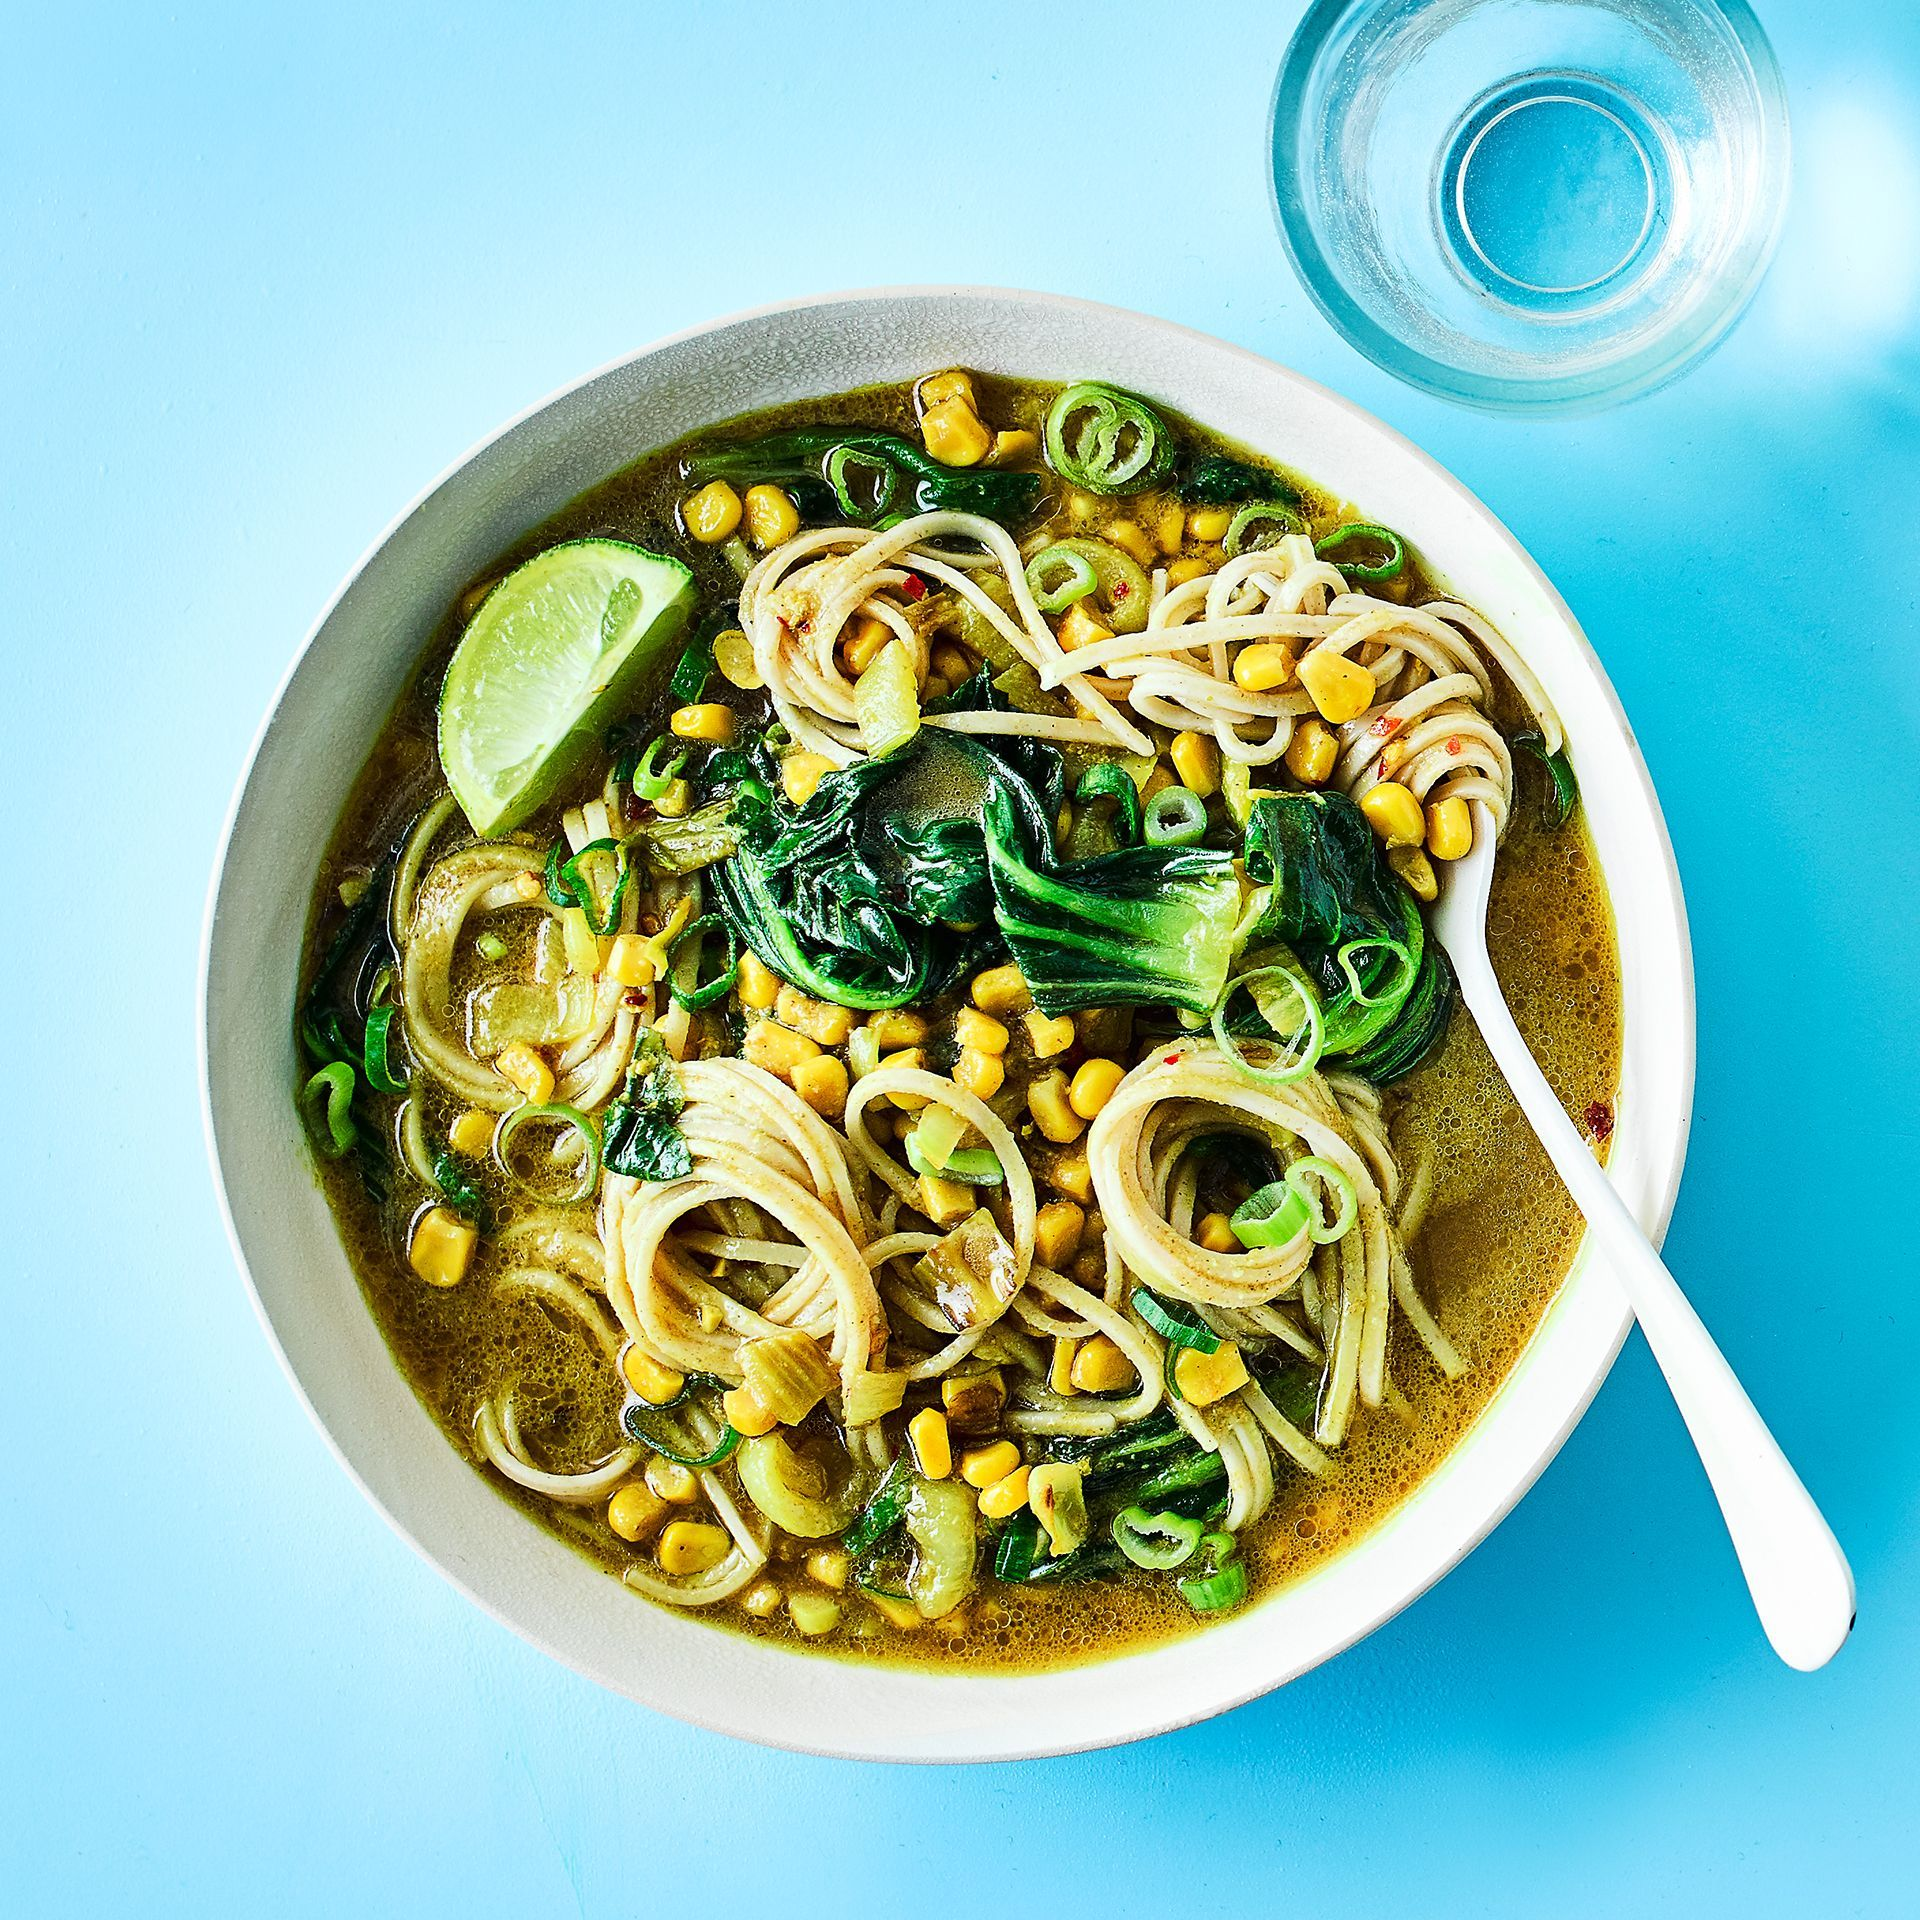 A quick and easy Sunny Sweetcorn Noodles recipe, from our authentic Asian cuisine collection. Find brilliant recipe ideas and cooking tips at Gousto #sweetcornideas A quick and easy Sunny Sweetcorn Noodles recipe, from our authentic Asian cuisine collection. Find brilliant recipe ideas and cooking tips at Gousto #sweetcornideas